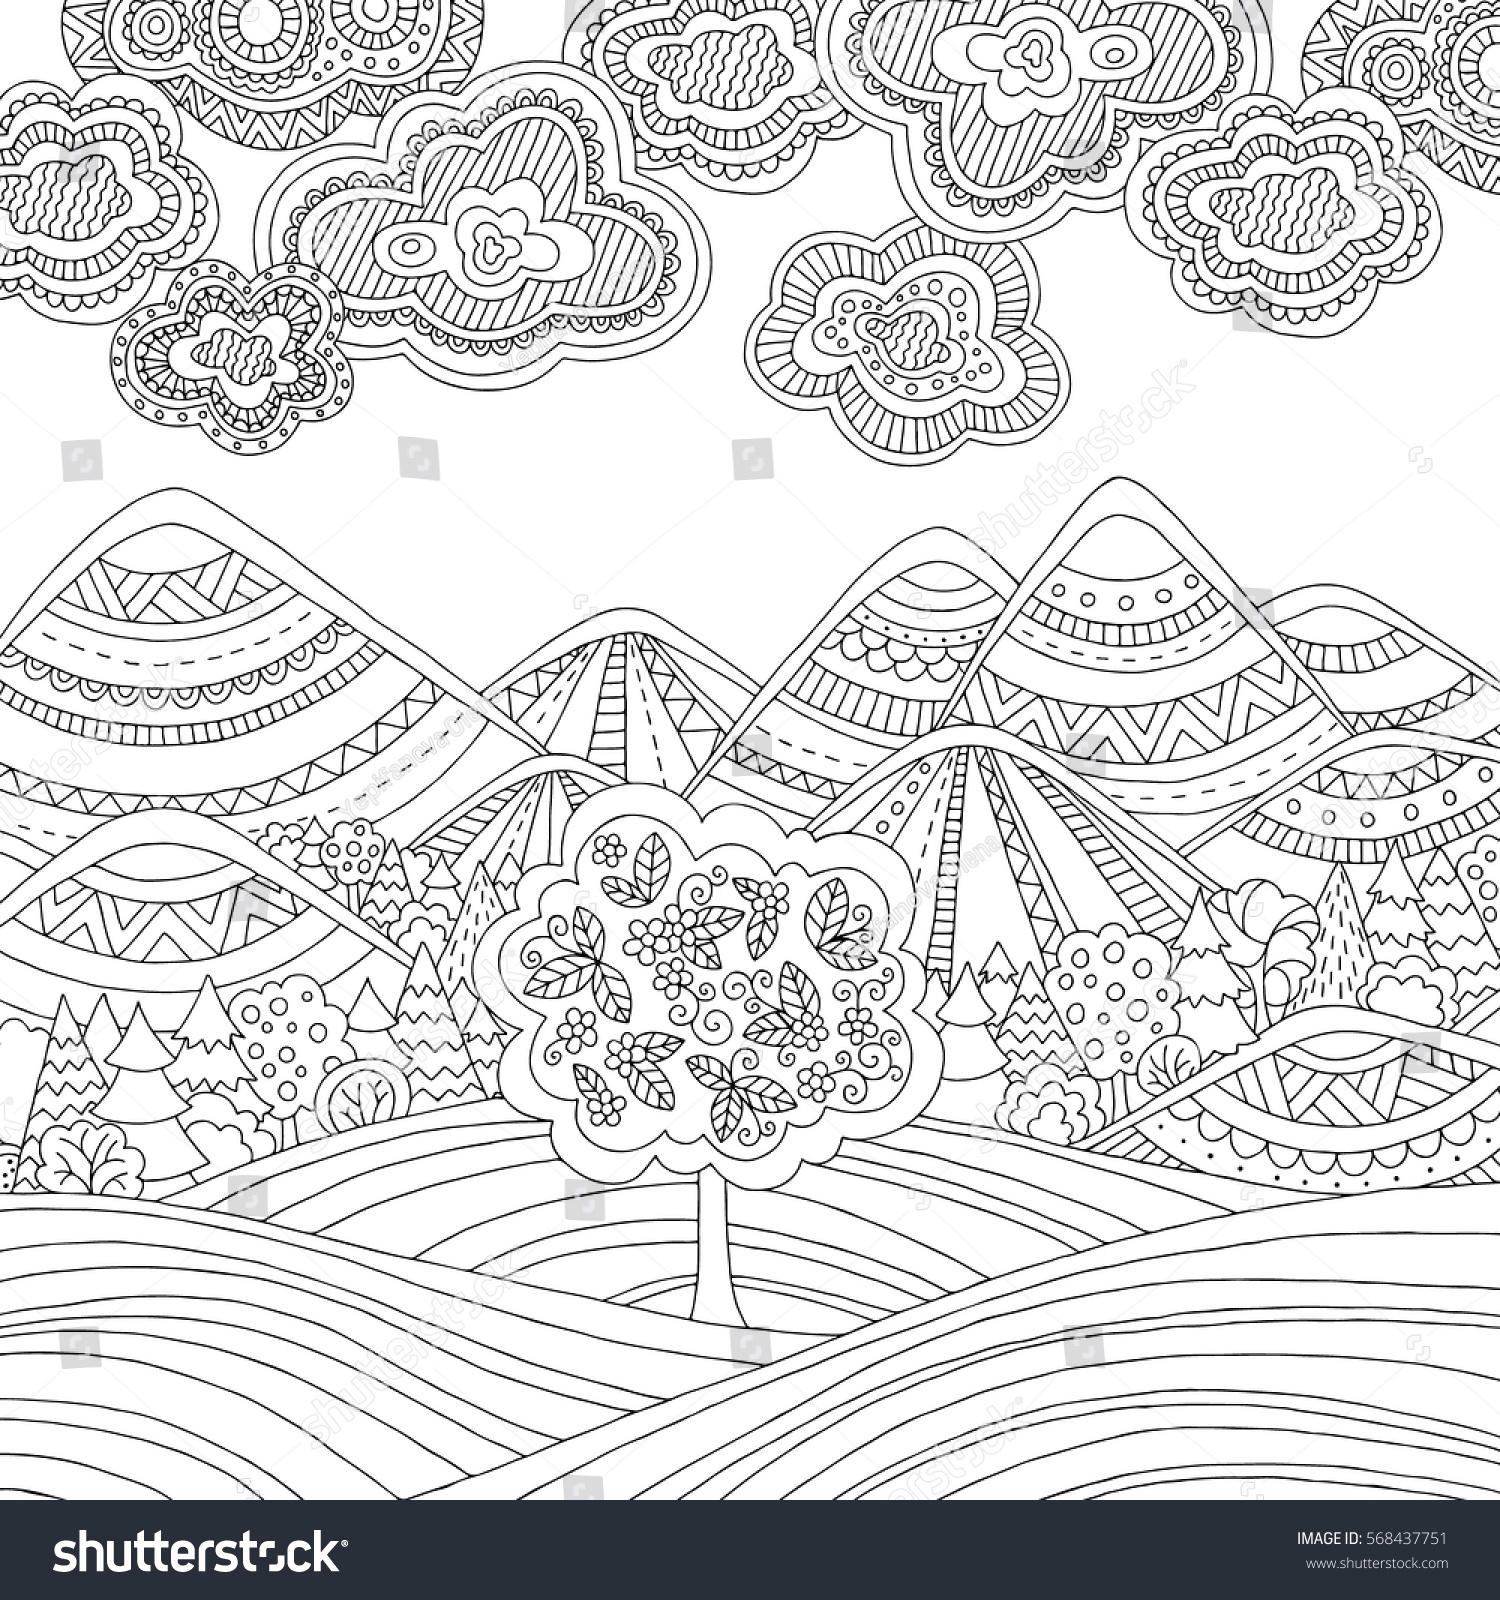 printable coloring page adults mountain landscape stock vector